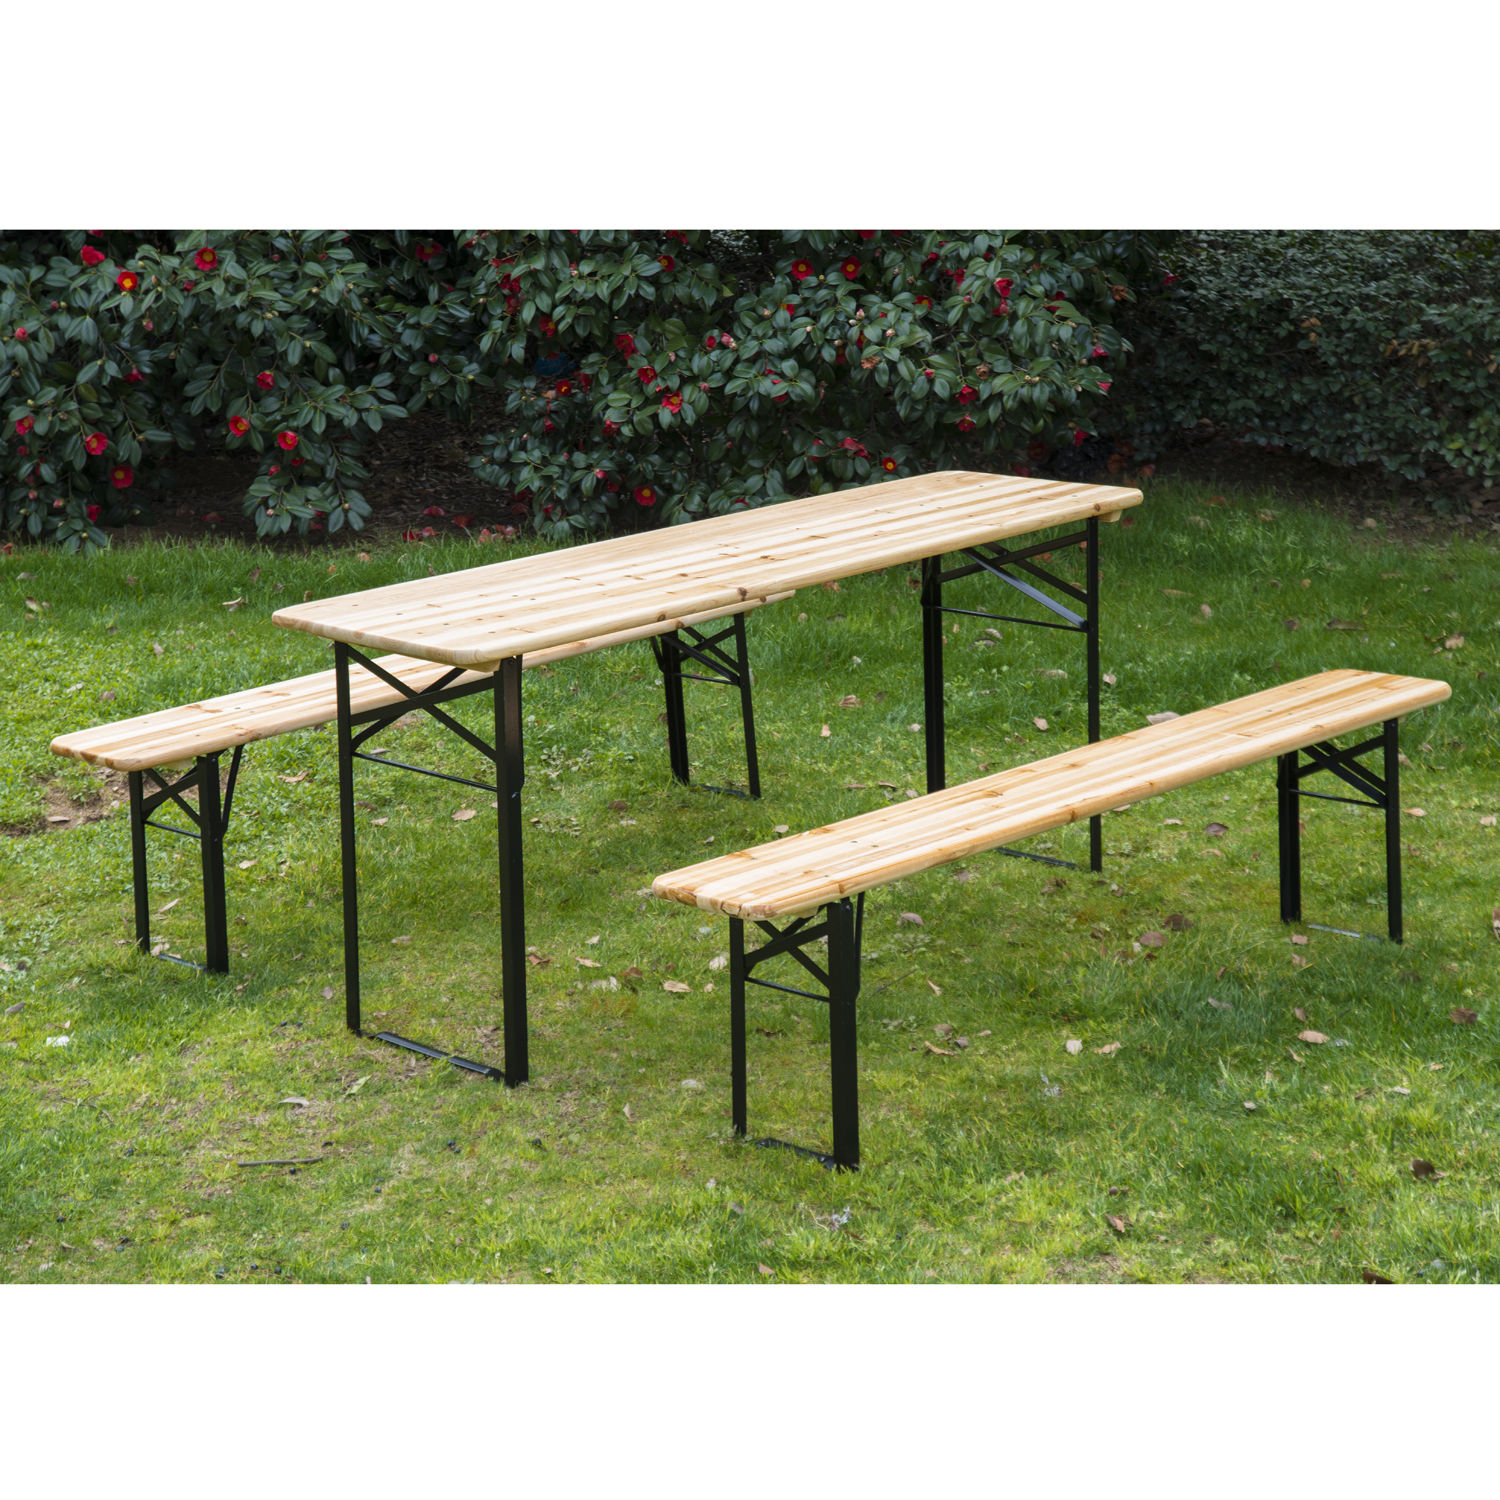 3Pcs Wooden Beer Table Bench Set Patio Folding Picnic Table Chair ...